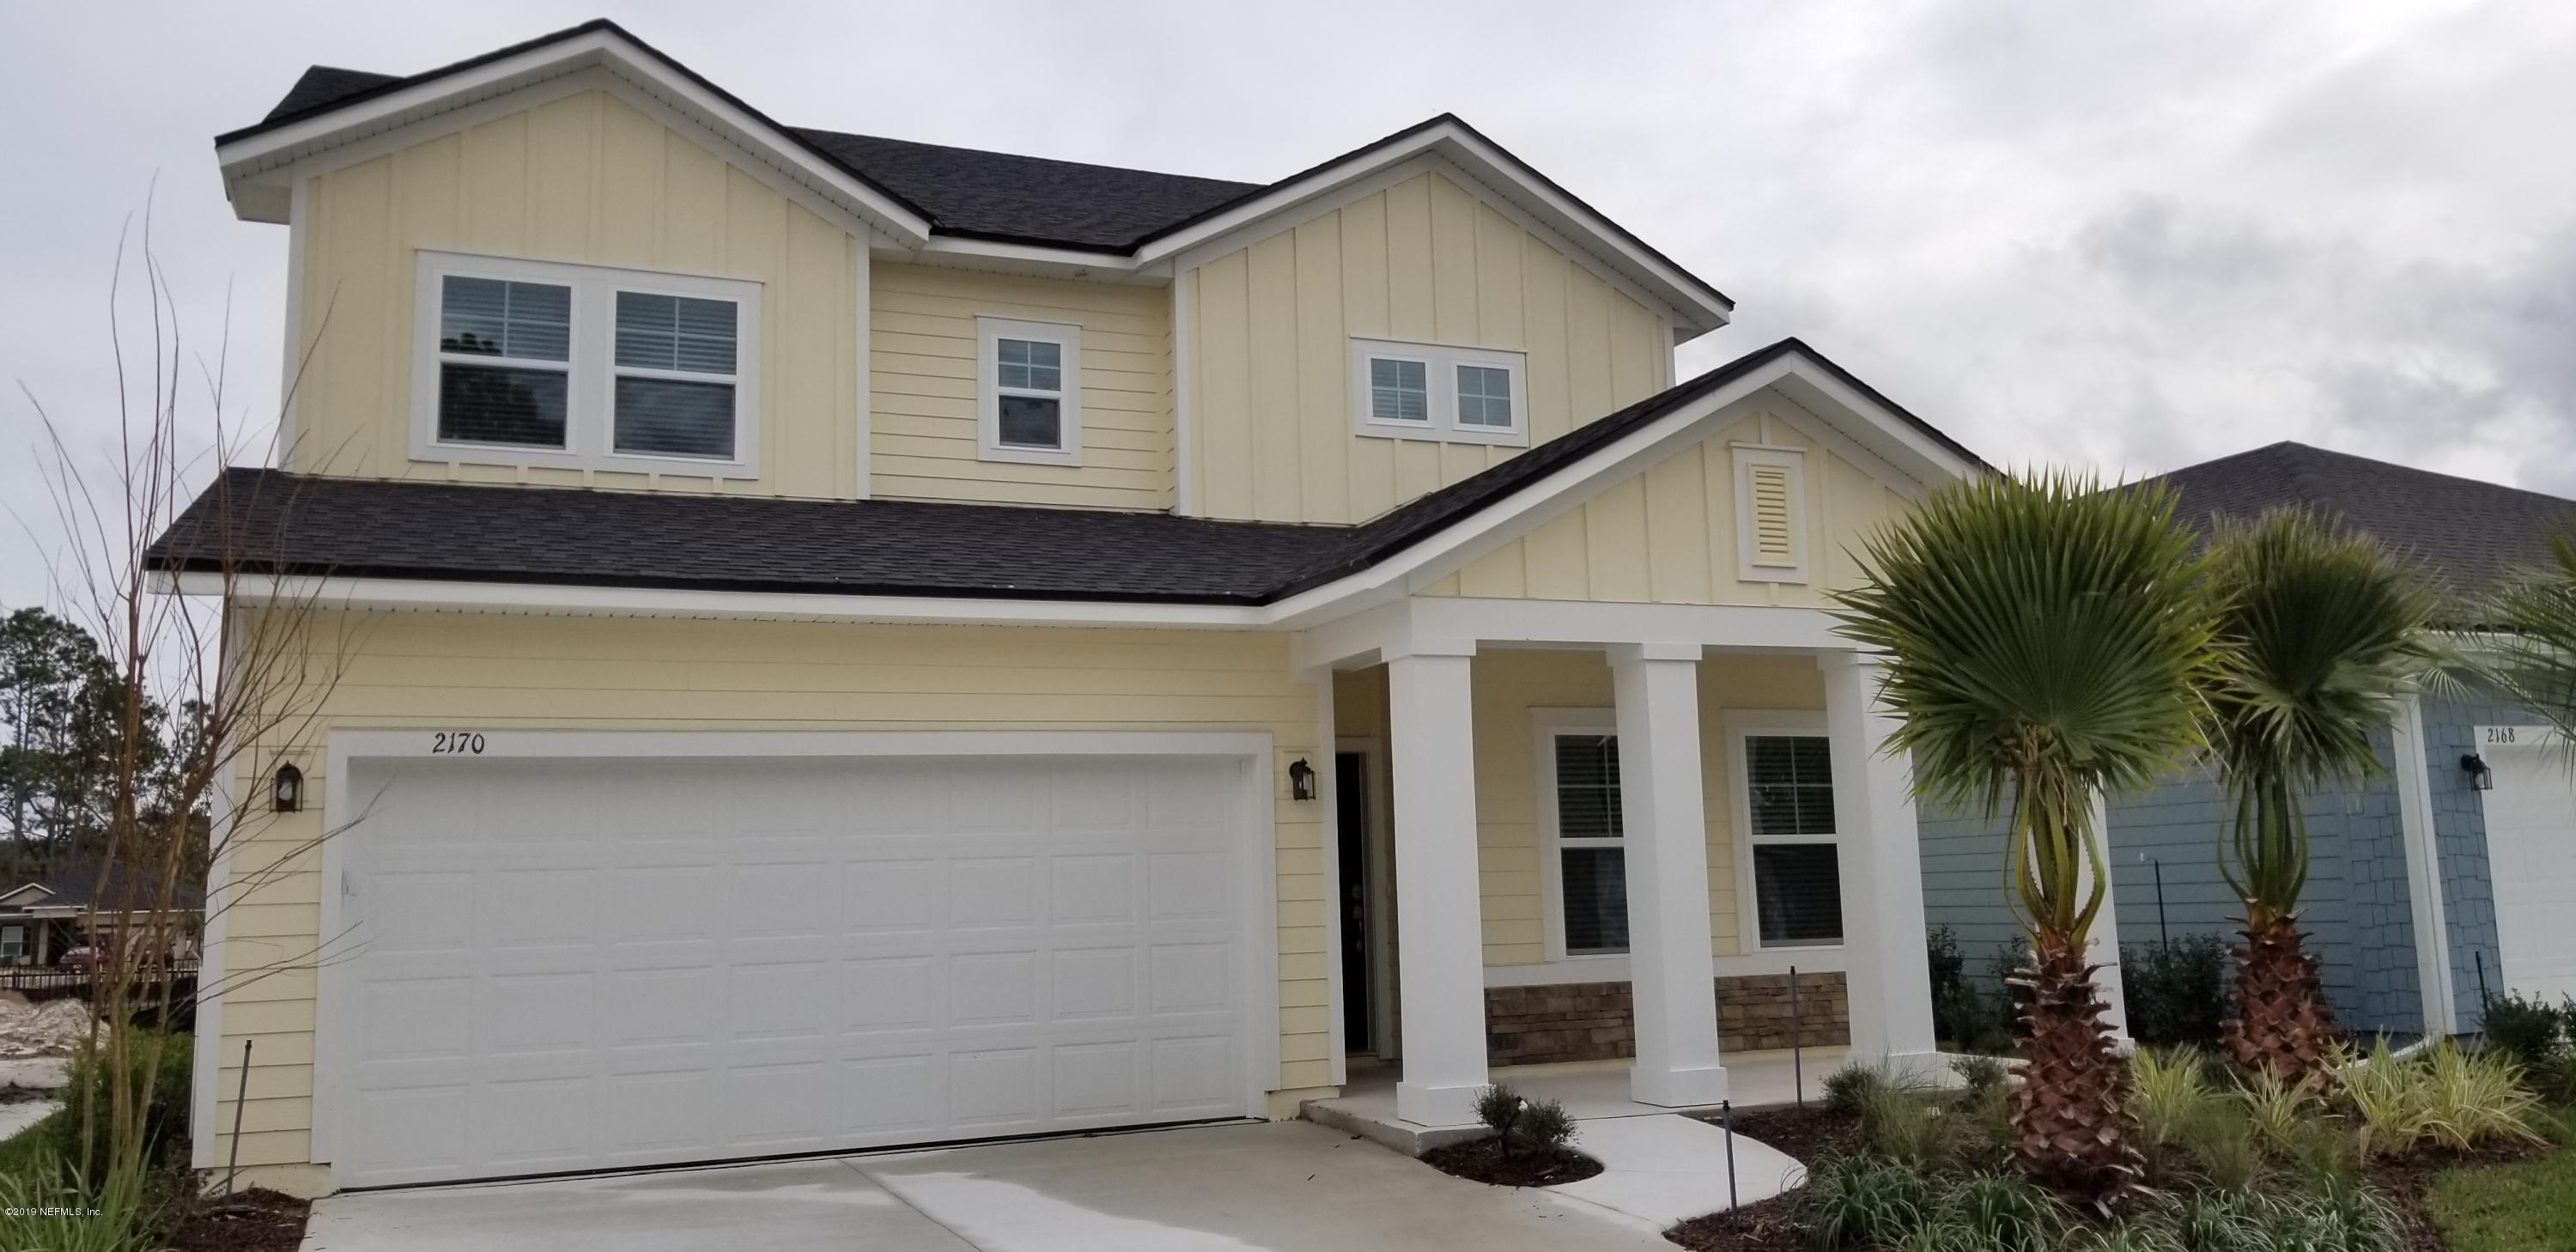 2170  EAGLE TALON CIR, Fleming Island, Florida